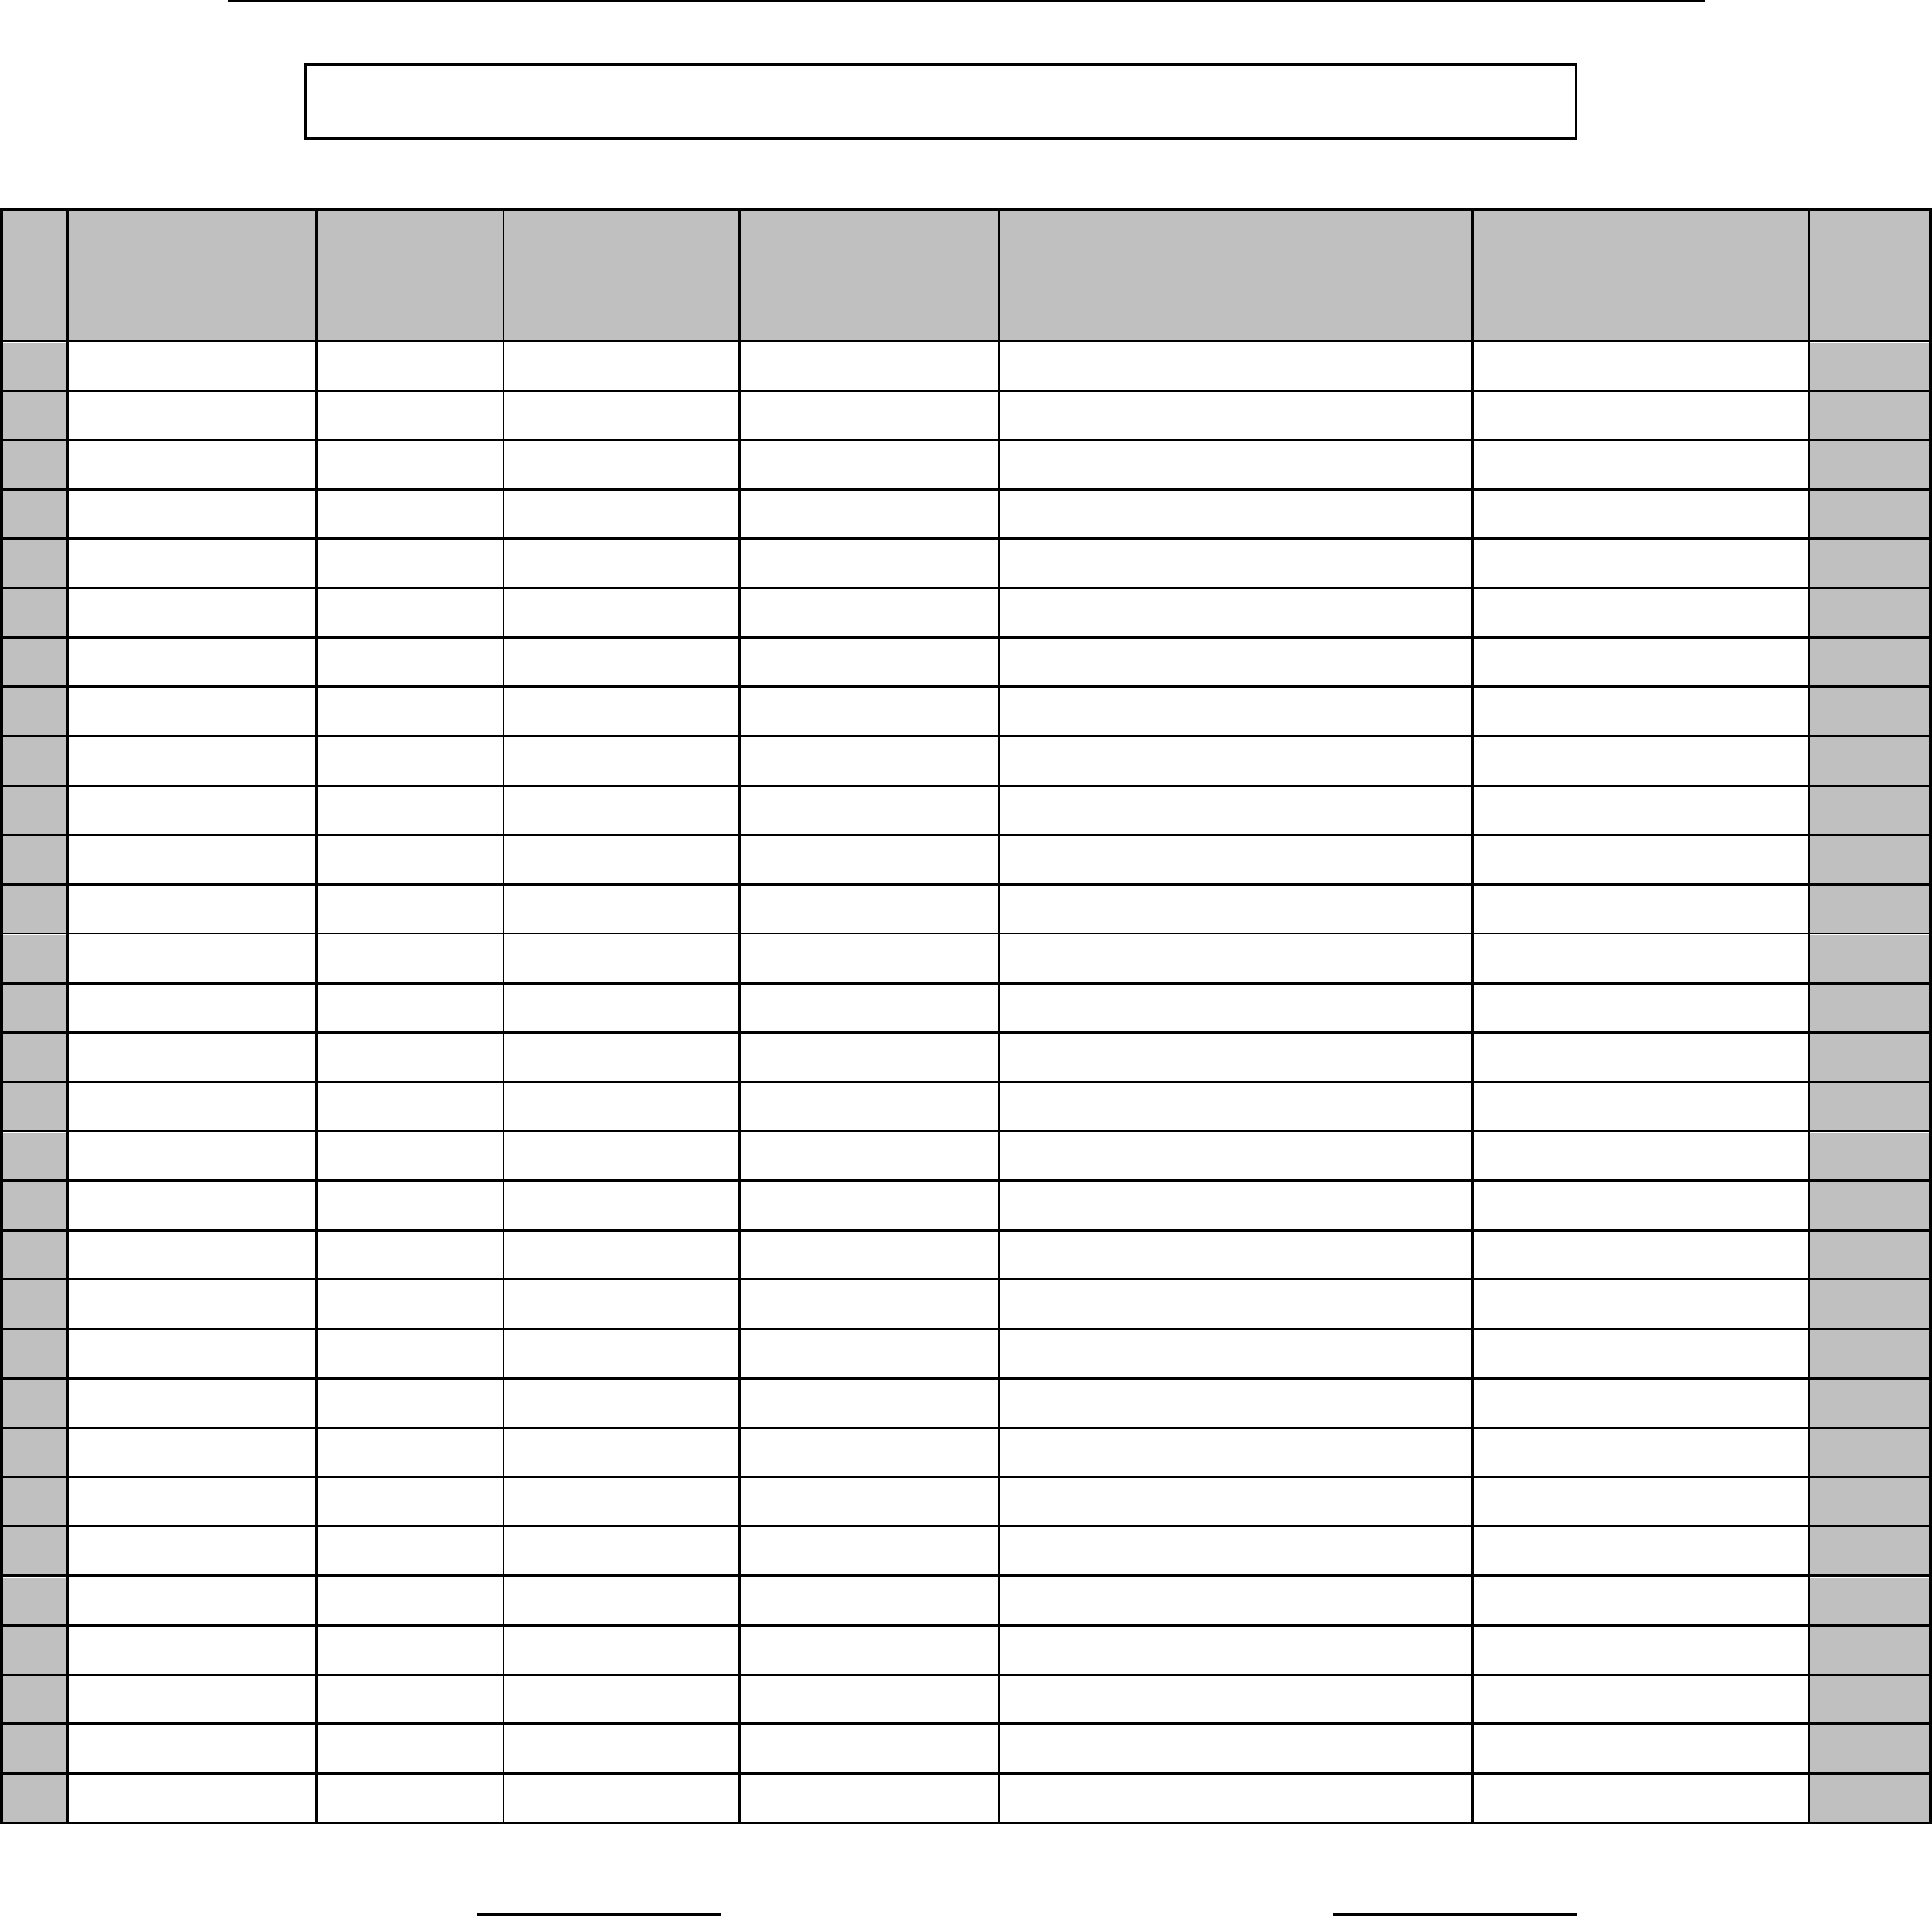 Blank Club Roster Template Free Download . Class Roster Template